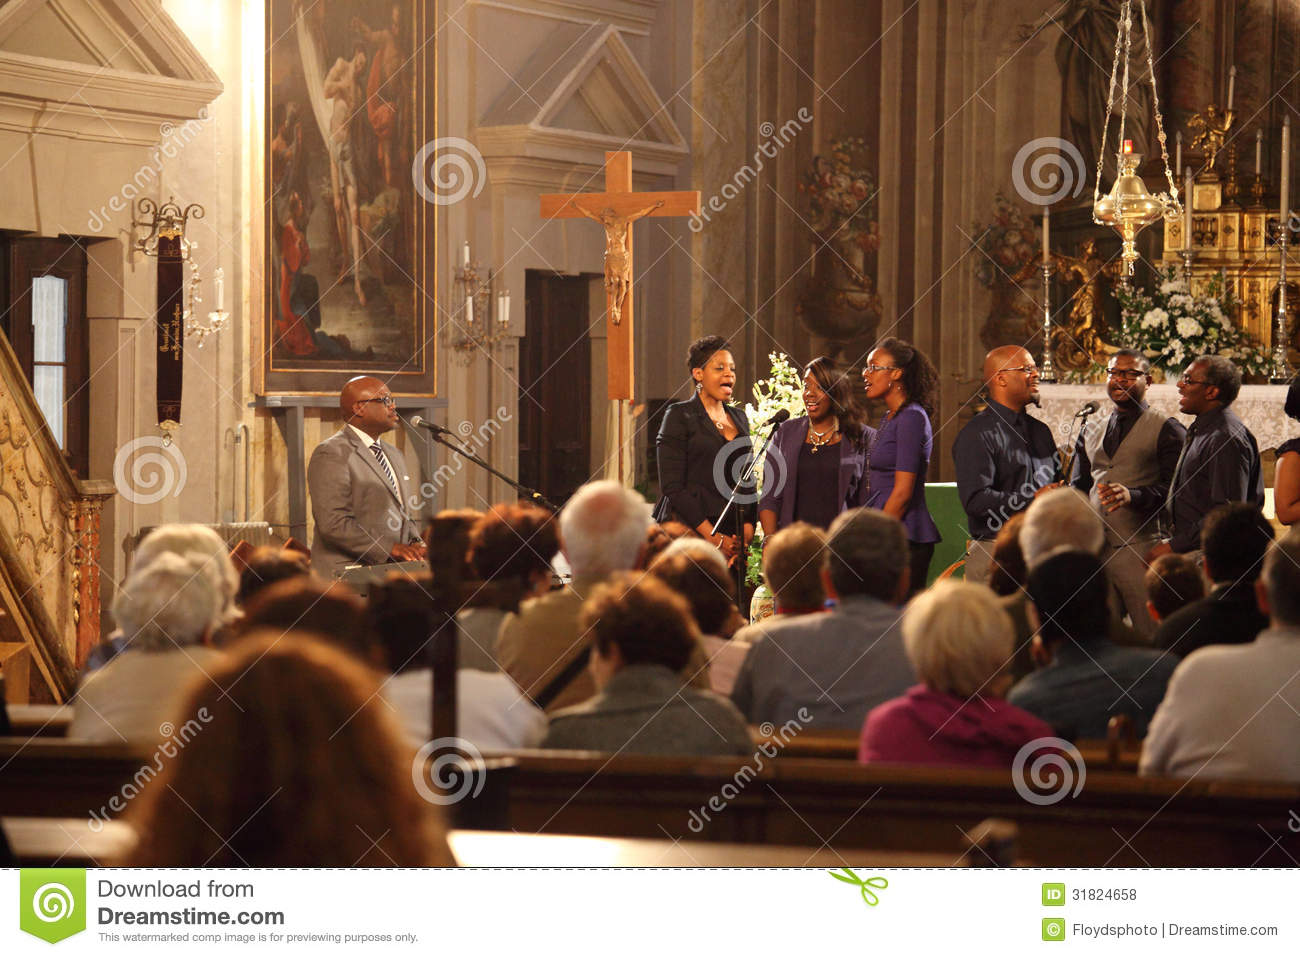 Gospel group singing inside a Church